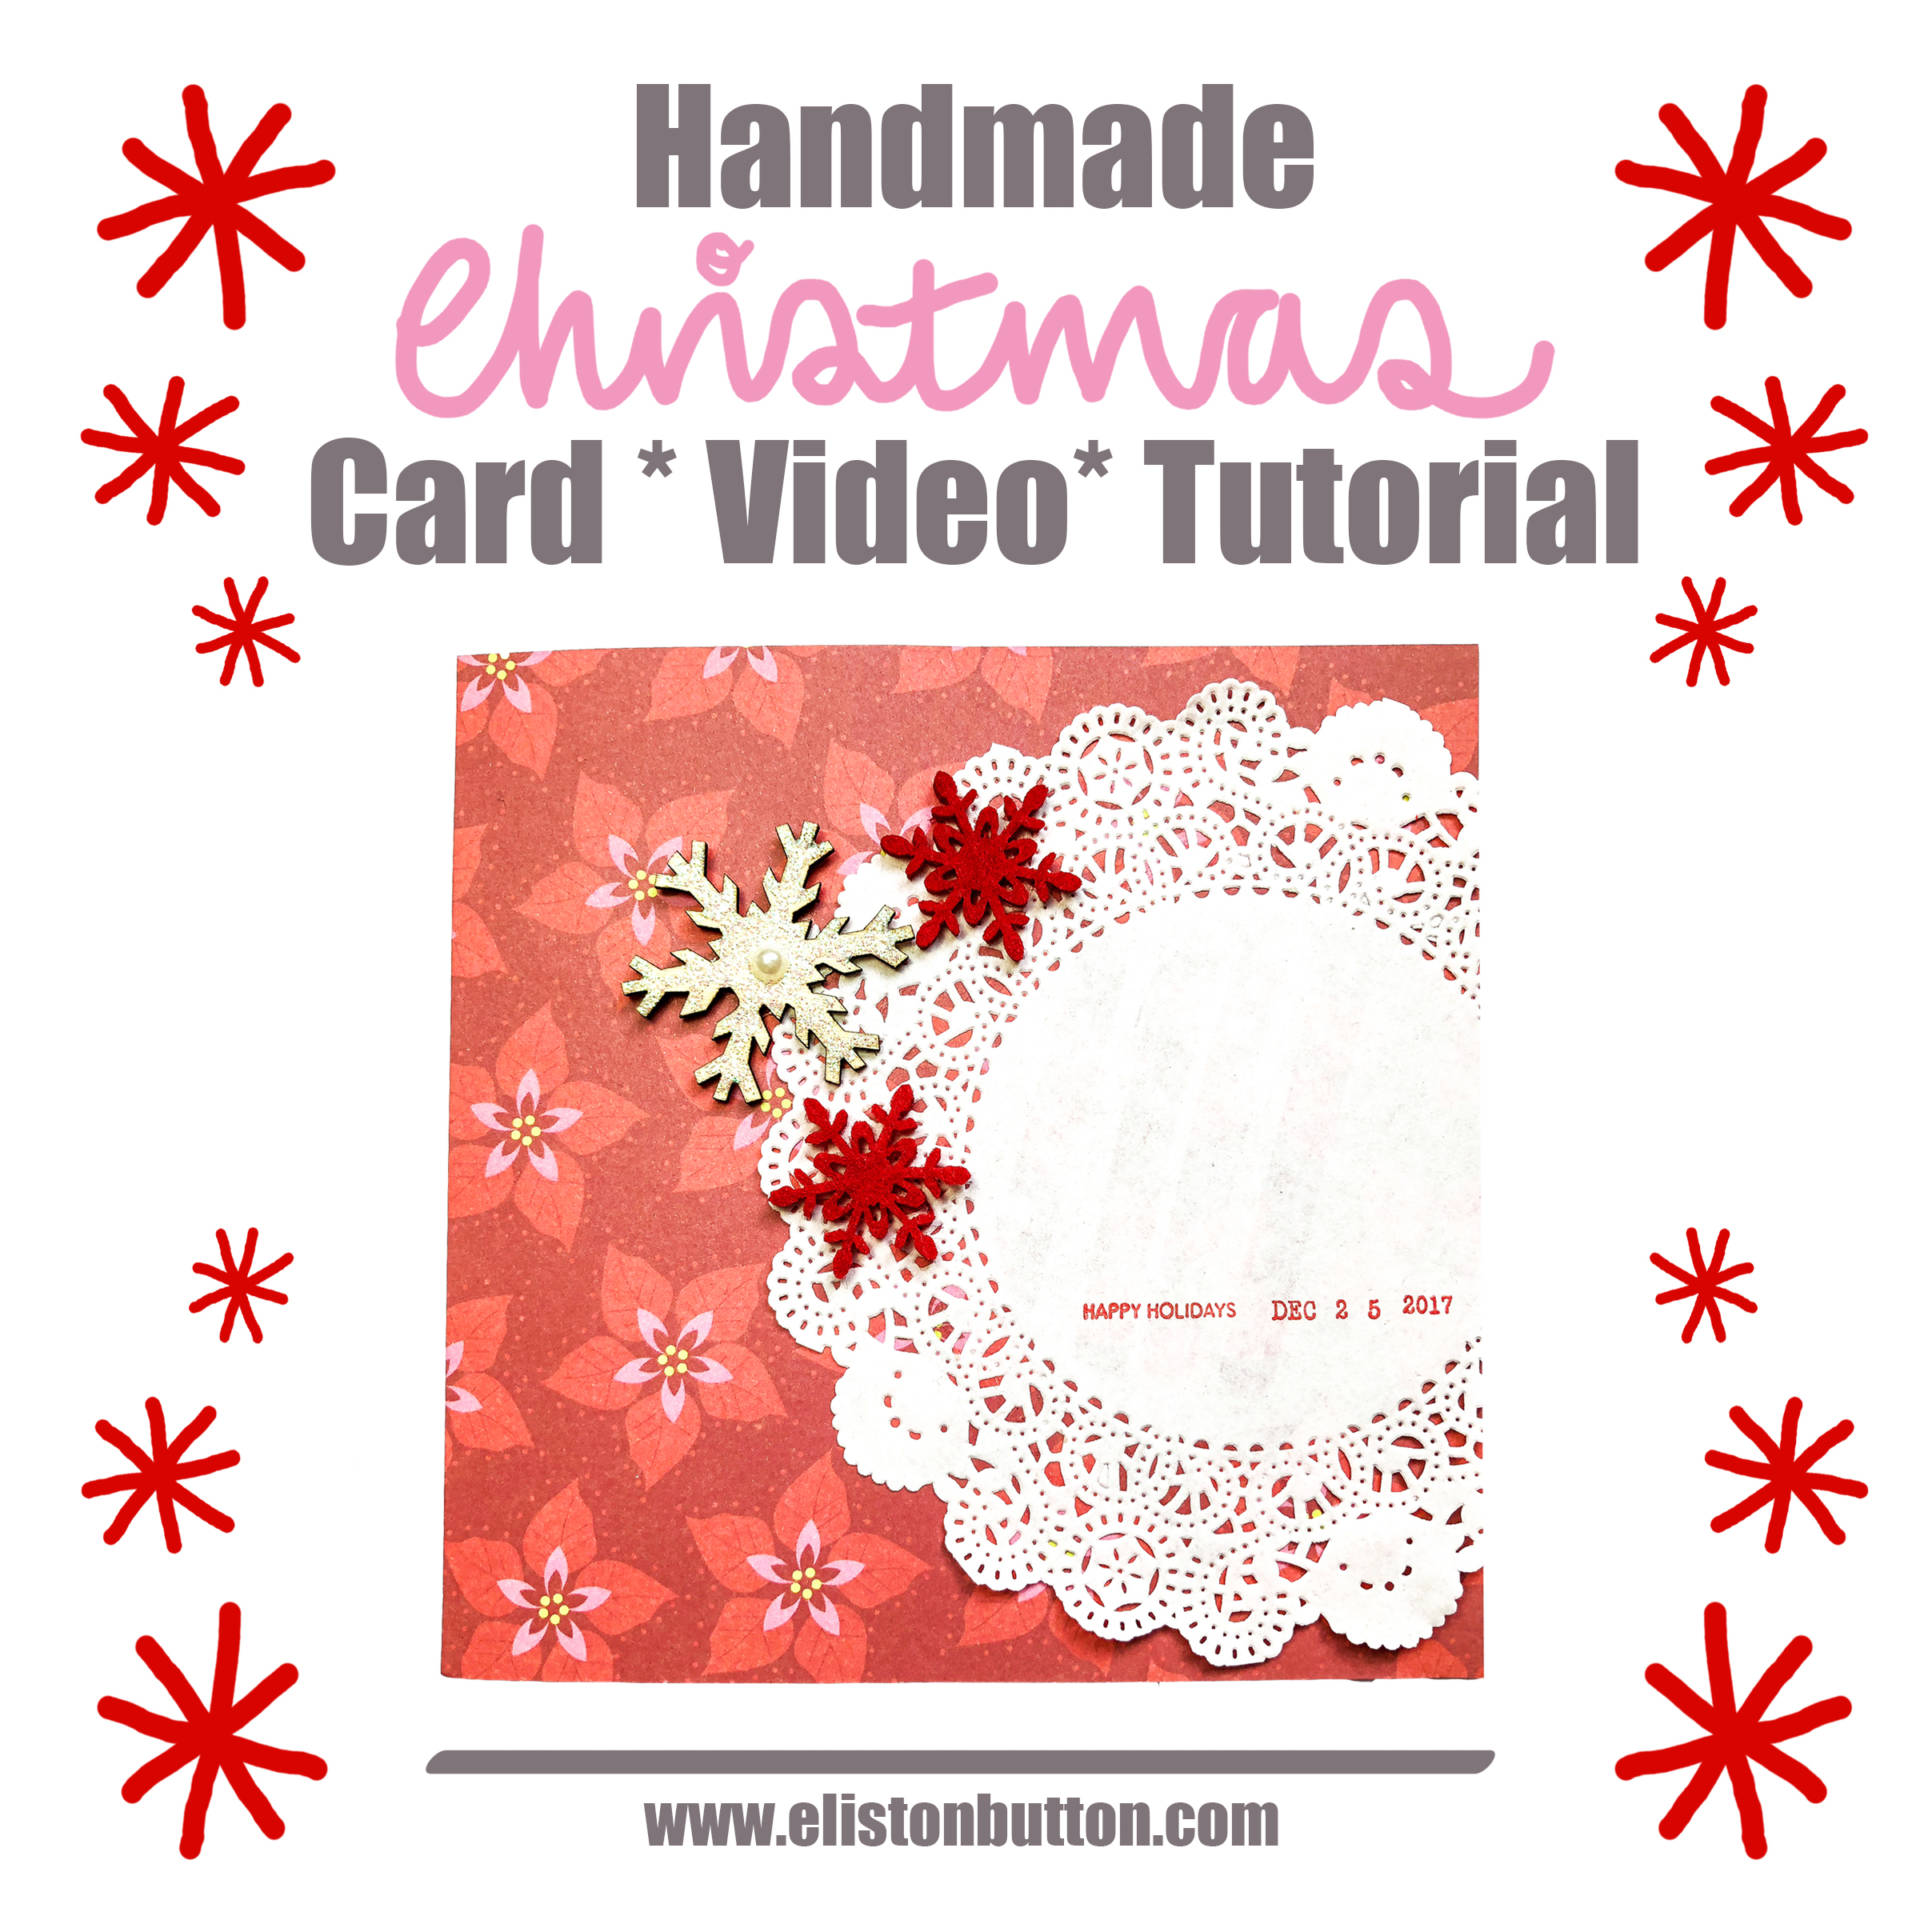 Handmade Christmas Card Video Tutorial by Eliston Button - For the Love of…Christmas at www.elistonbutton.com - Eliston Button - That Crafty Kid – Art, Design, Craft & Adventure.